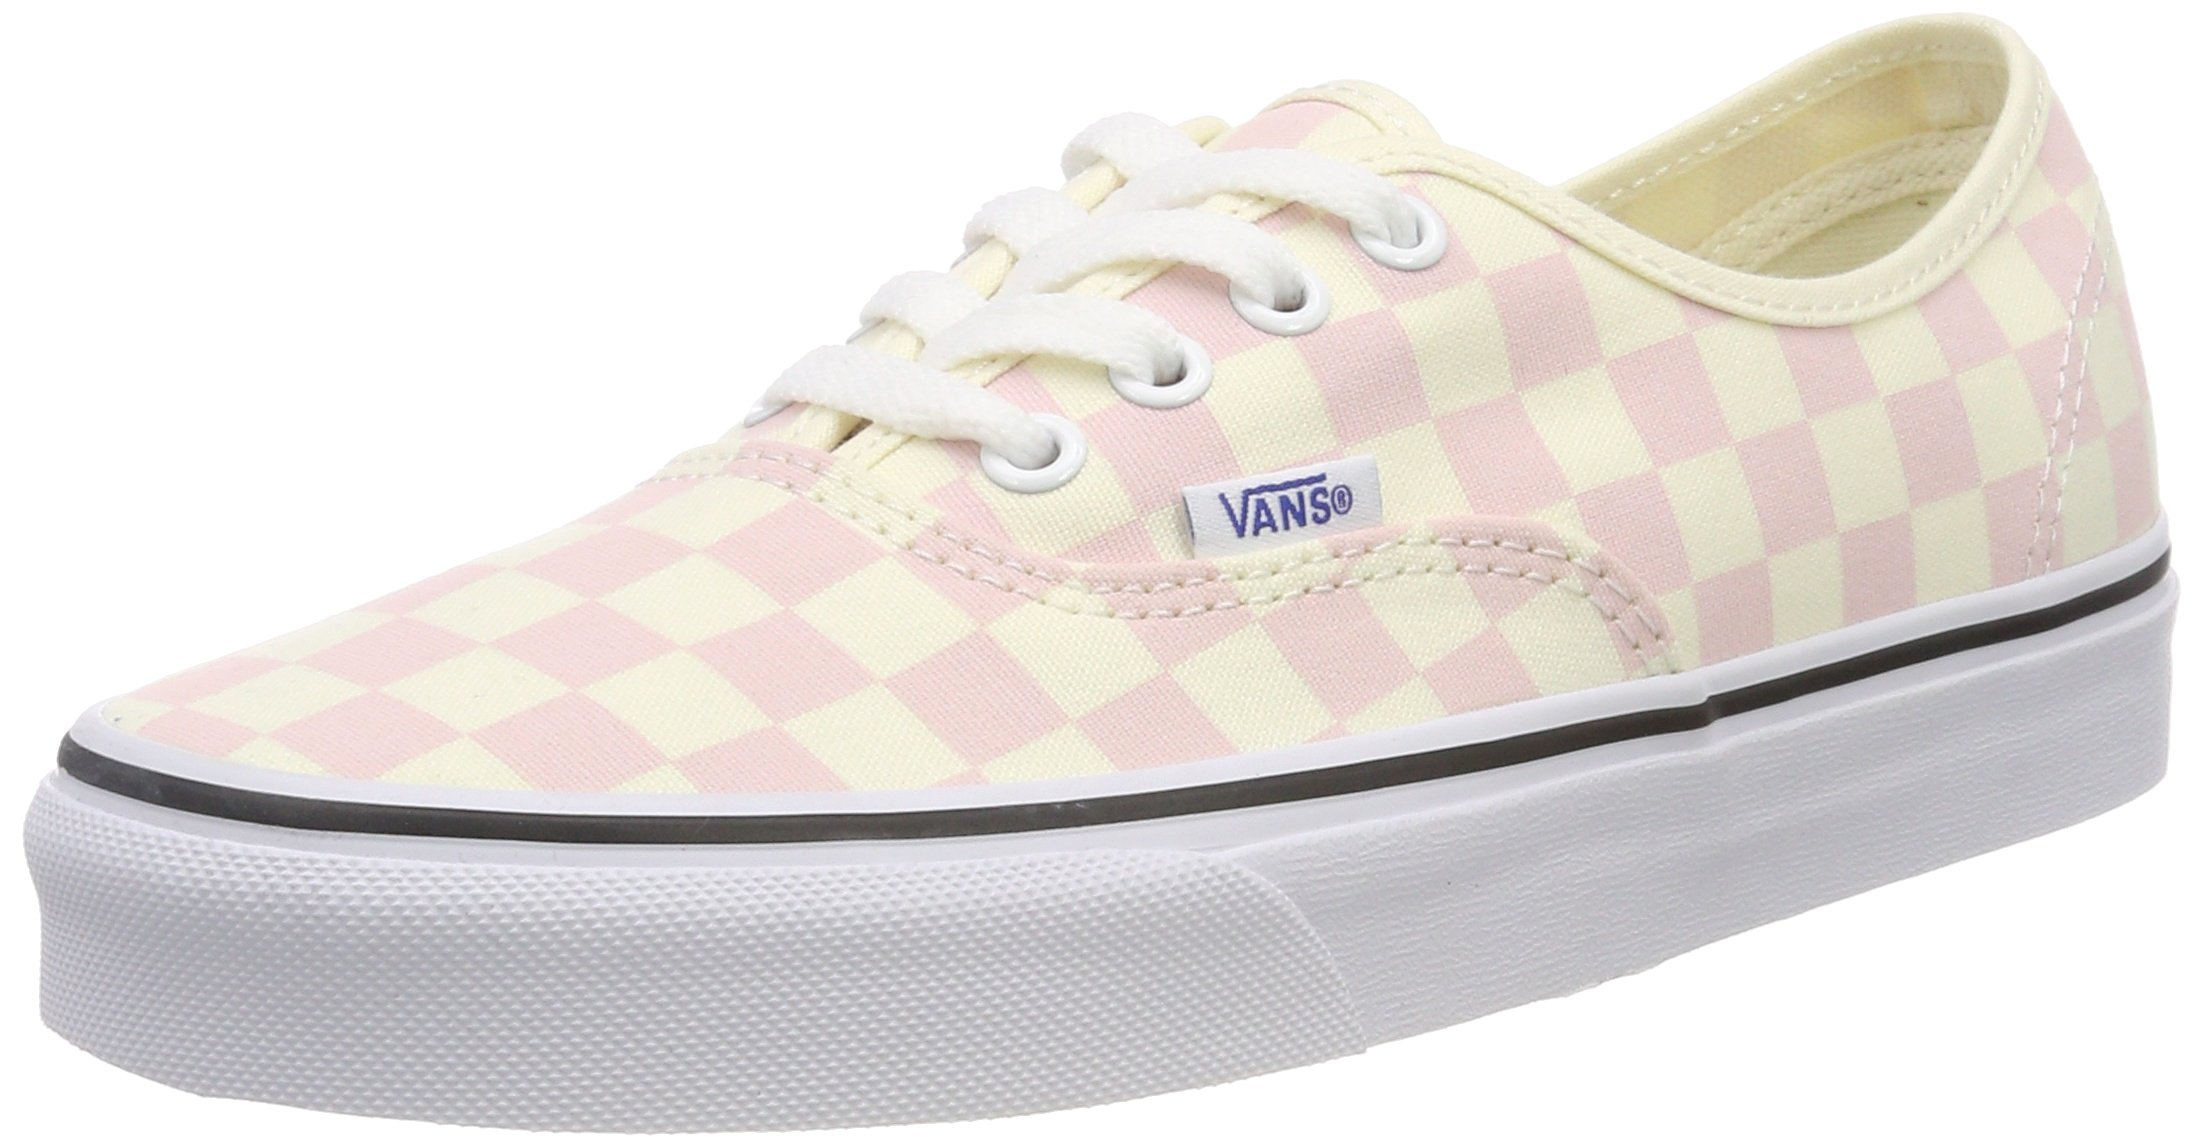 Vans Women's Authentic Trainers, Pink (Checkerboard) Chalk Pink/Classic White Q8l, 10 UK 44.5 EU